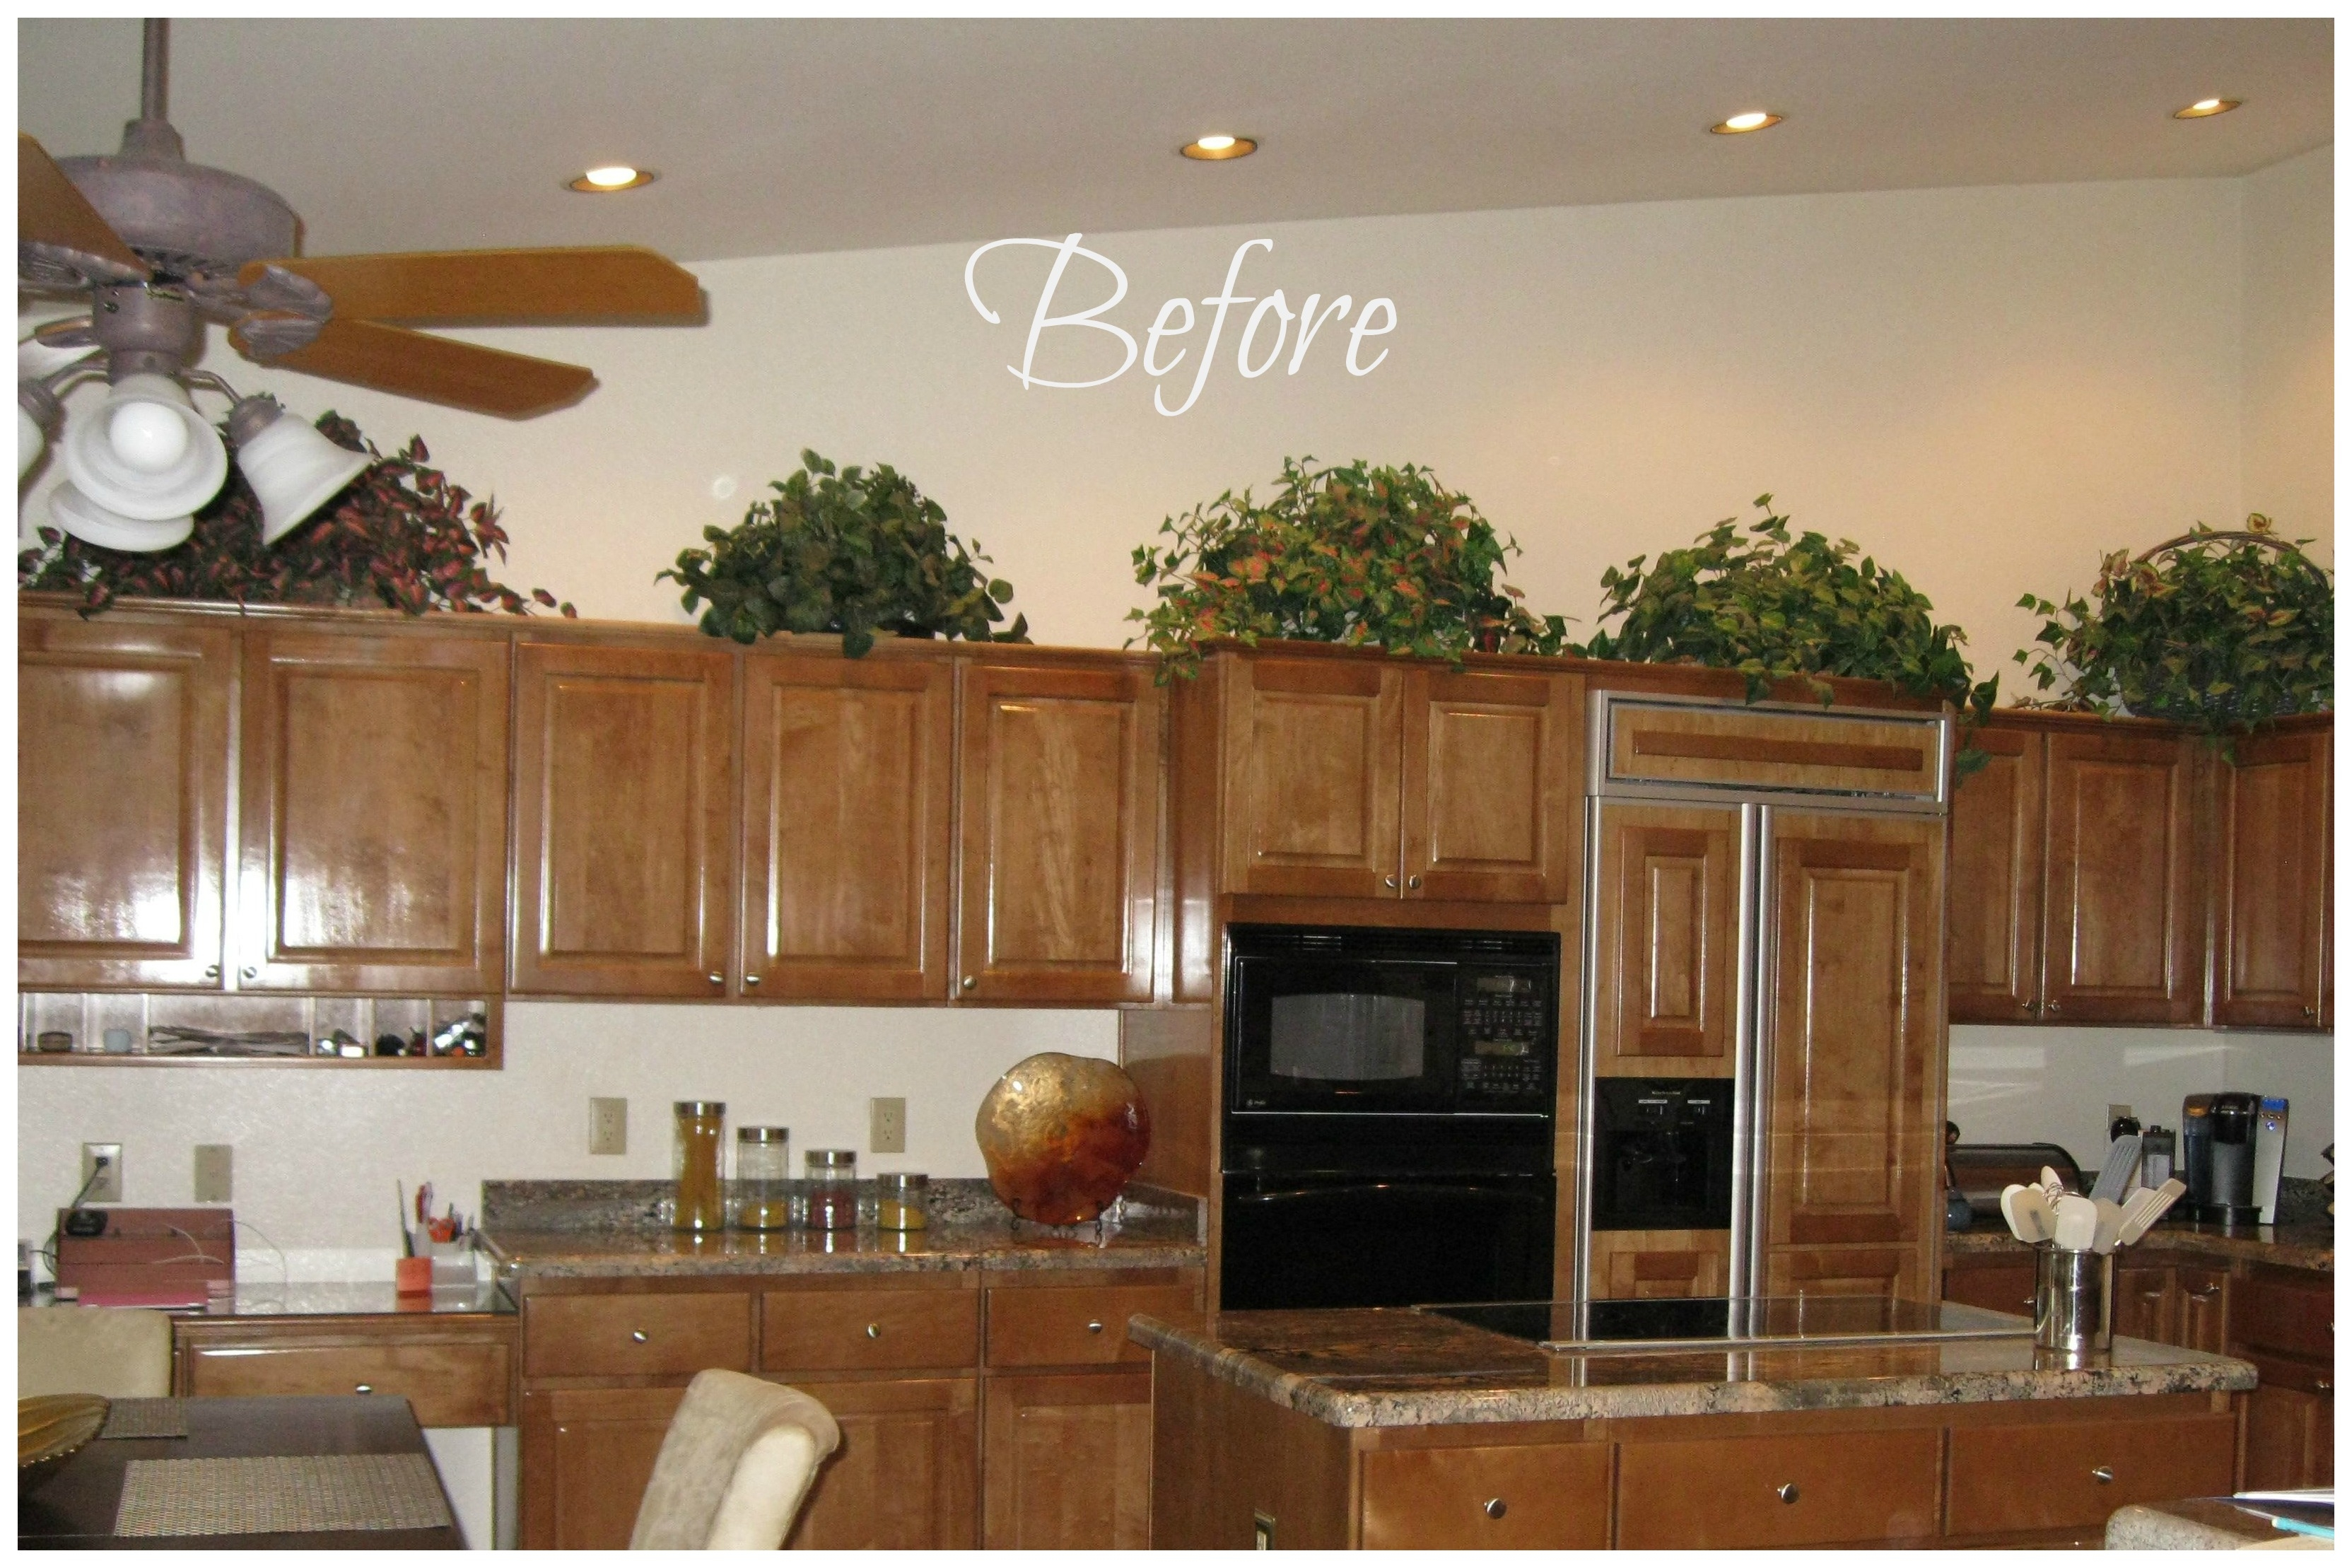 Home Decor Above Kitchen Cabinets